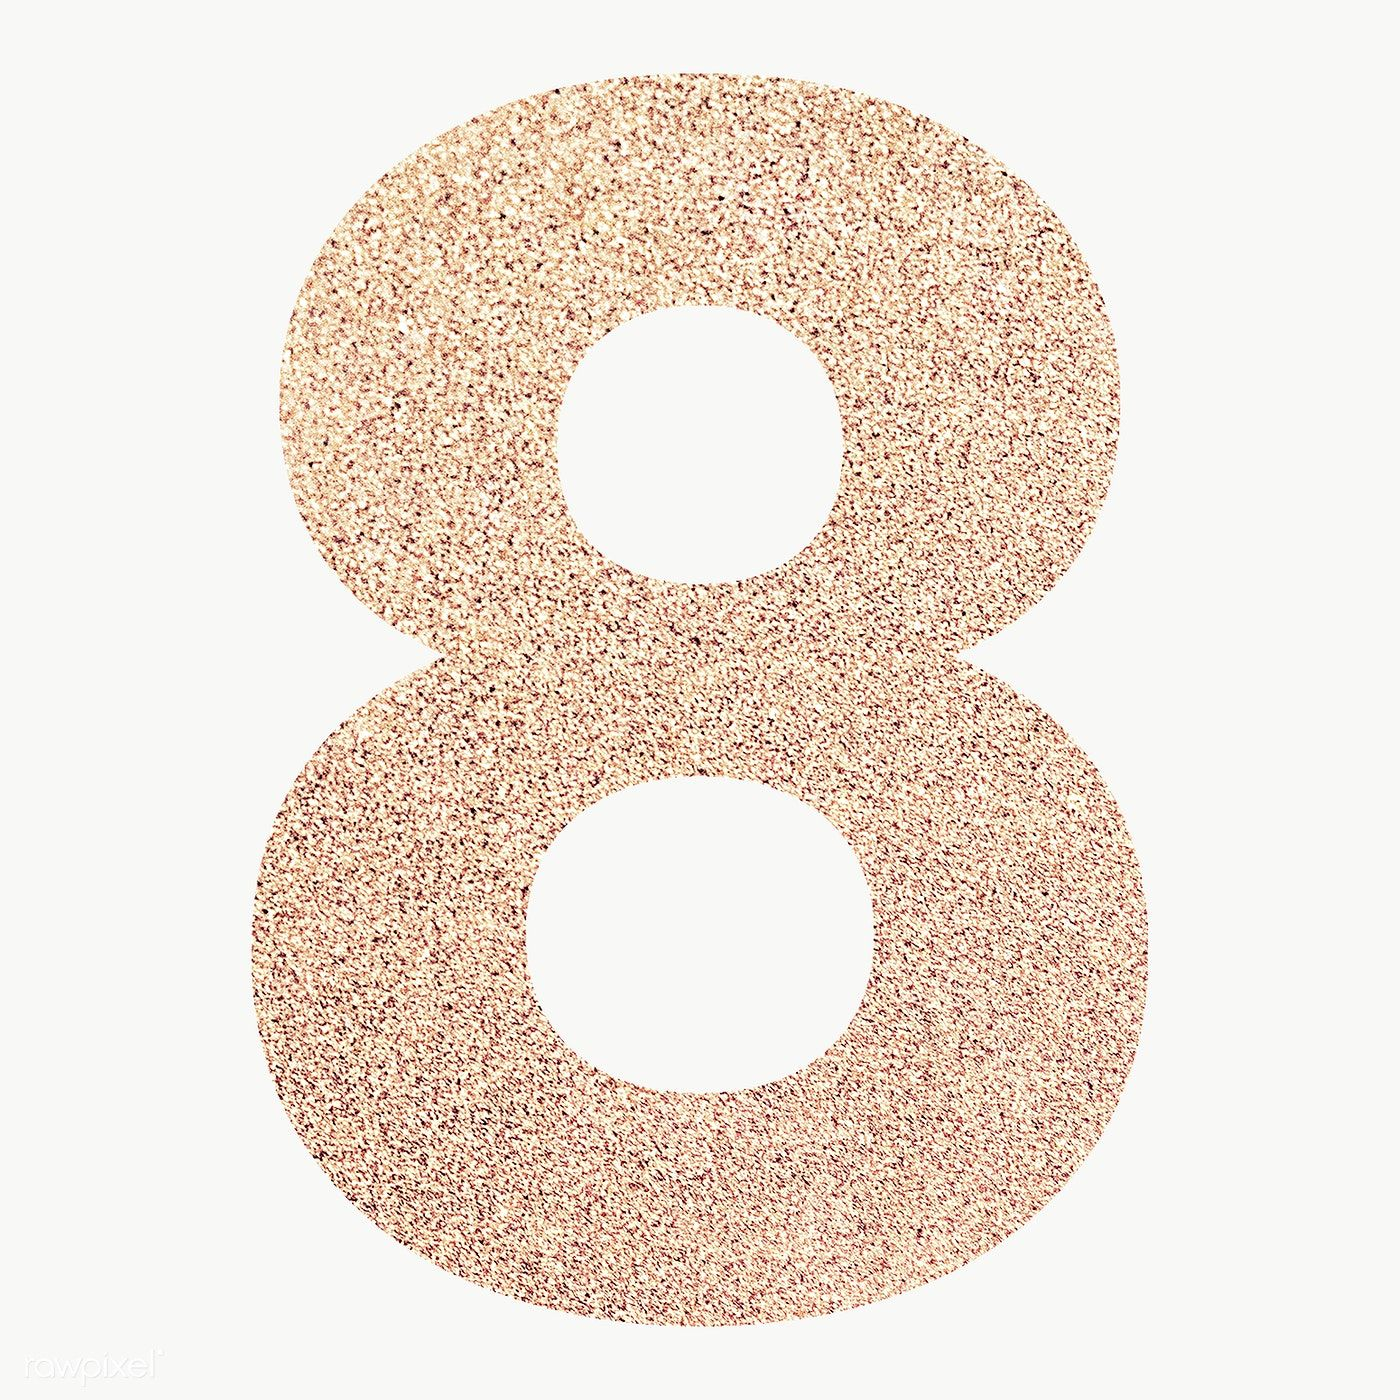 Glitter Number 8 Typography Transparent Png Free Image By Rawpixel Com Ningzk V Typography Glitter Numbers